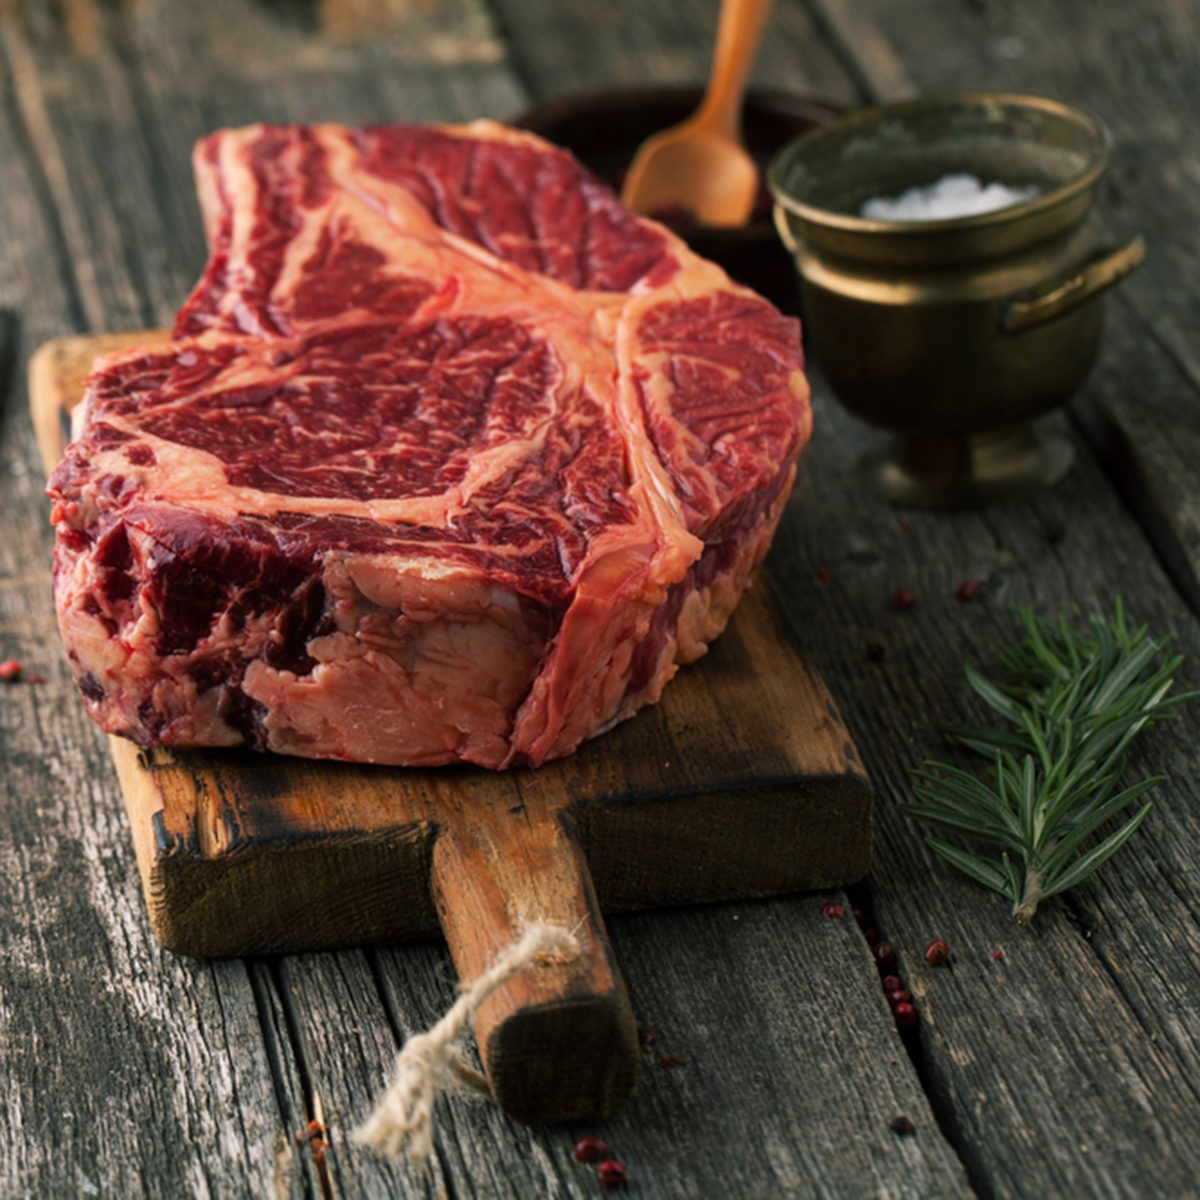 Raw fresh meat Ribeye Steak with pepper and salt on wooden background